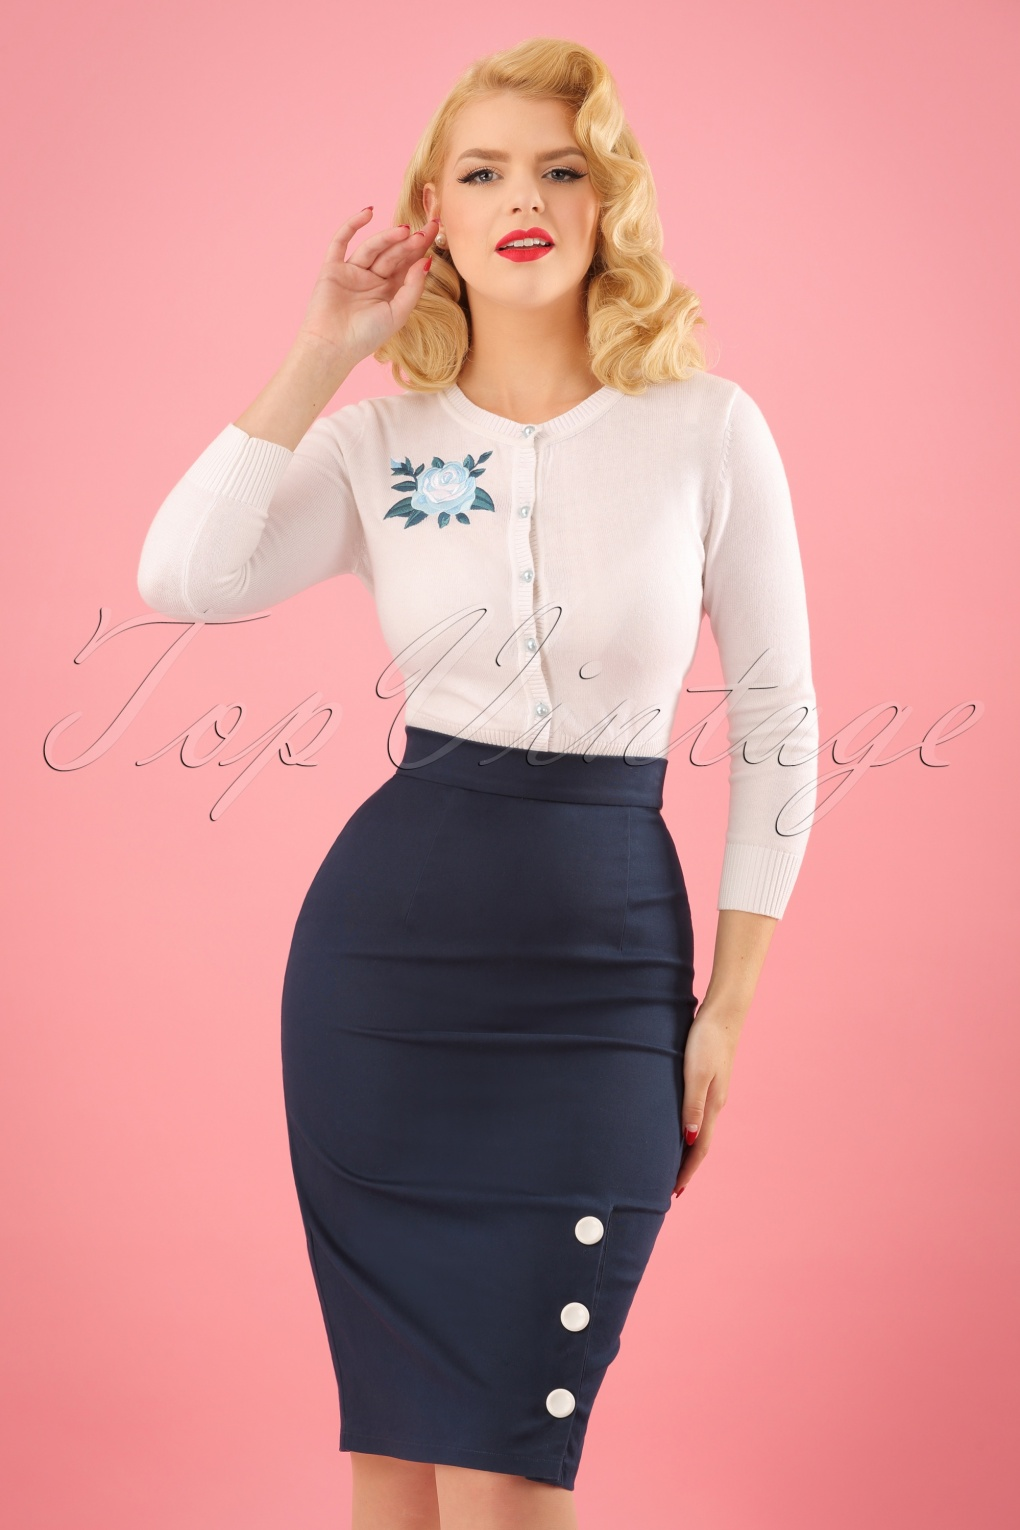 50s Skirt Styles | Poodle Skirts, Circle Skirts, Pencil Skirts 50s Charlotte Pencil Skirt in Navy £39.51 AT vintagedancer.com